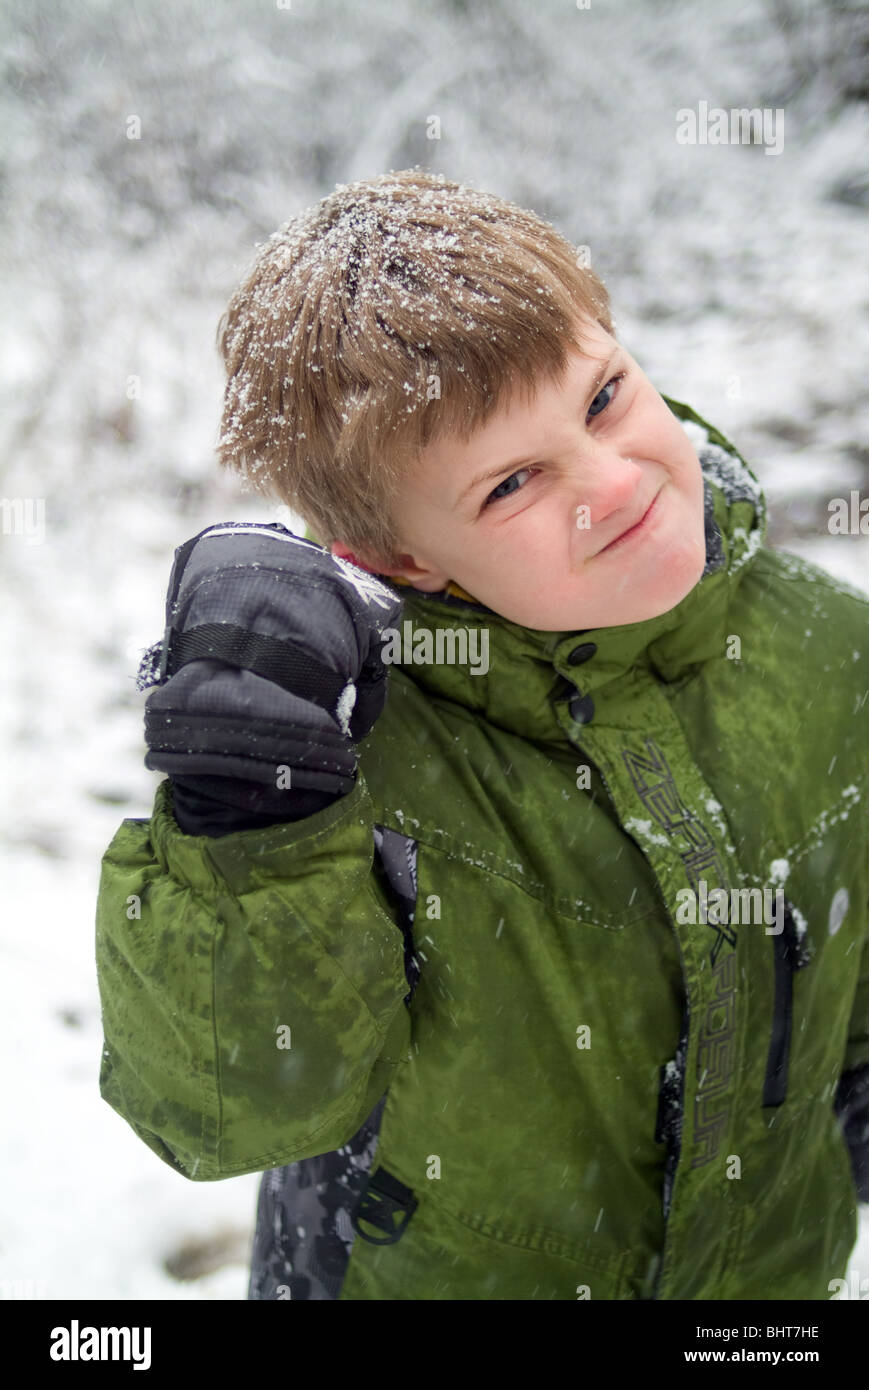 A Child playfully looking angry shaking his fist at camera - Stock Image